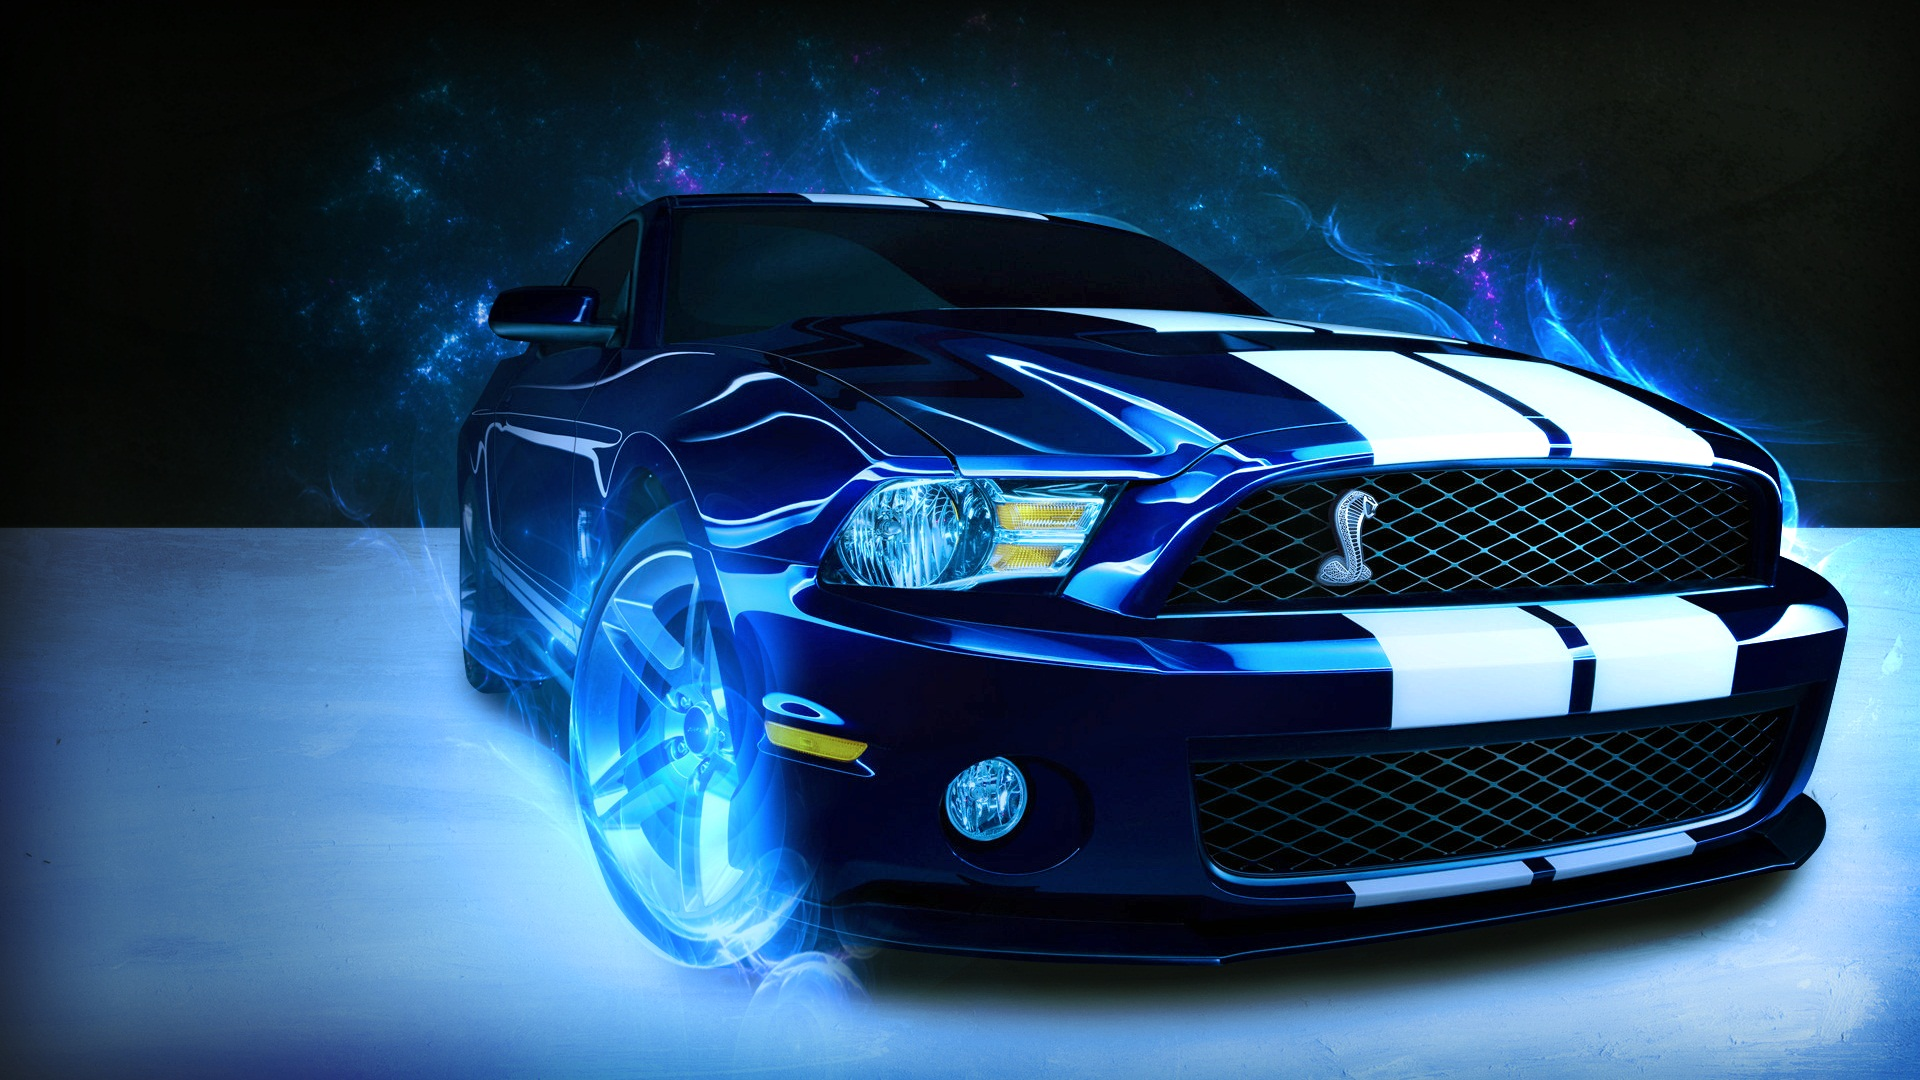 Shelby Mustang Wallpaper Hd 3